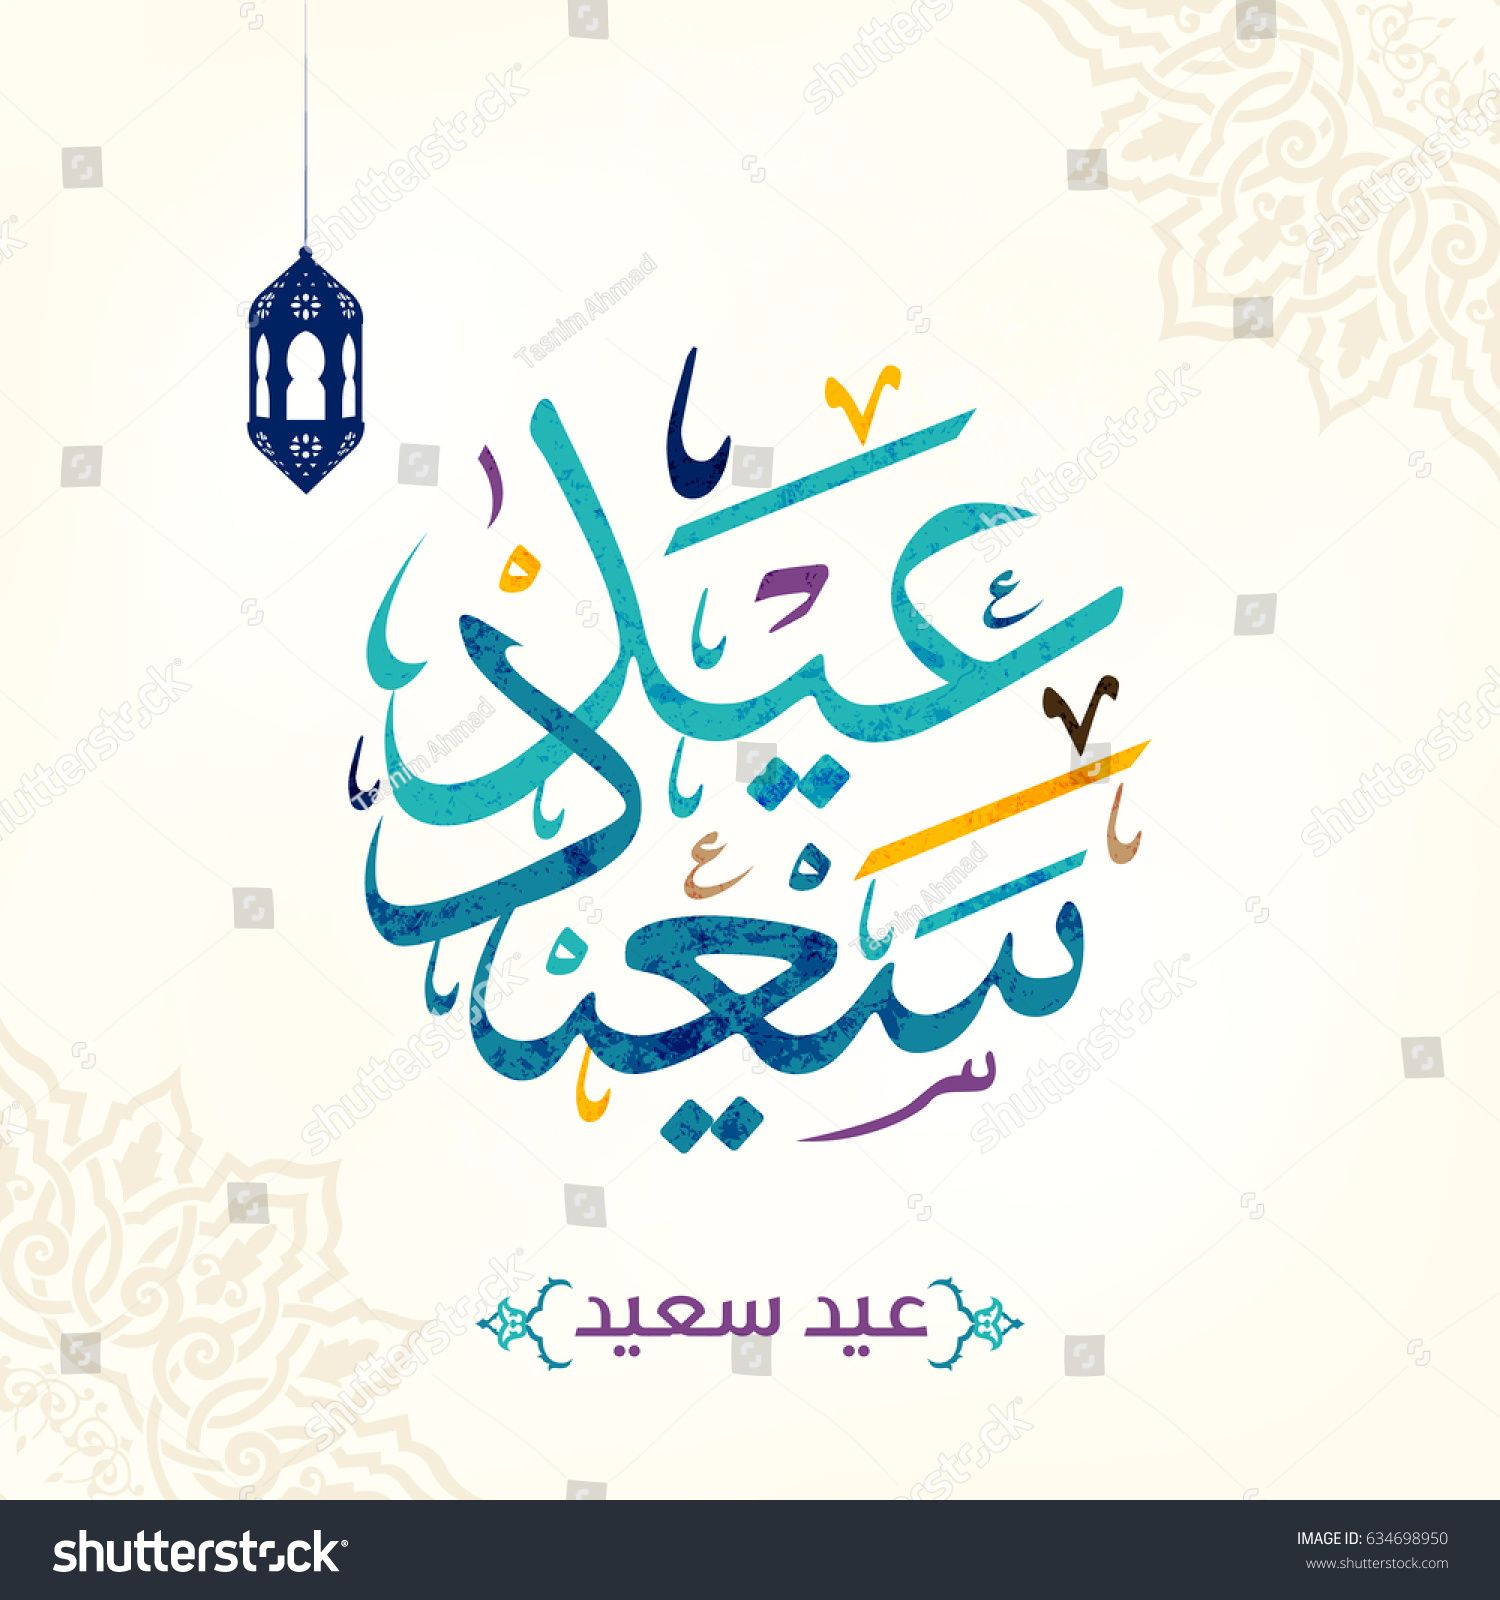 Happy Eid In Arabic Calligraphy Style Specially For Eid Celebrations And Greeting People Eid Stickers Eid Greetings Eid Mubarak Stickers